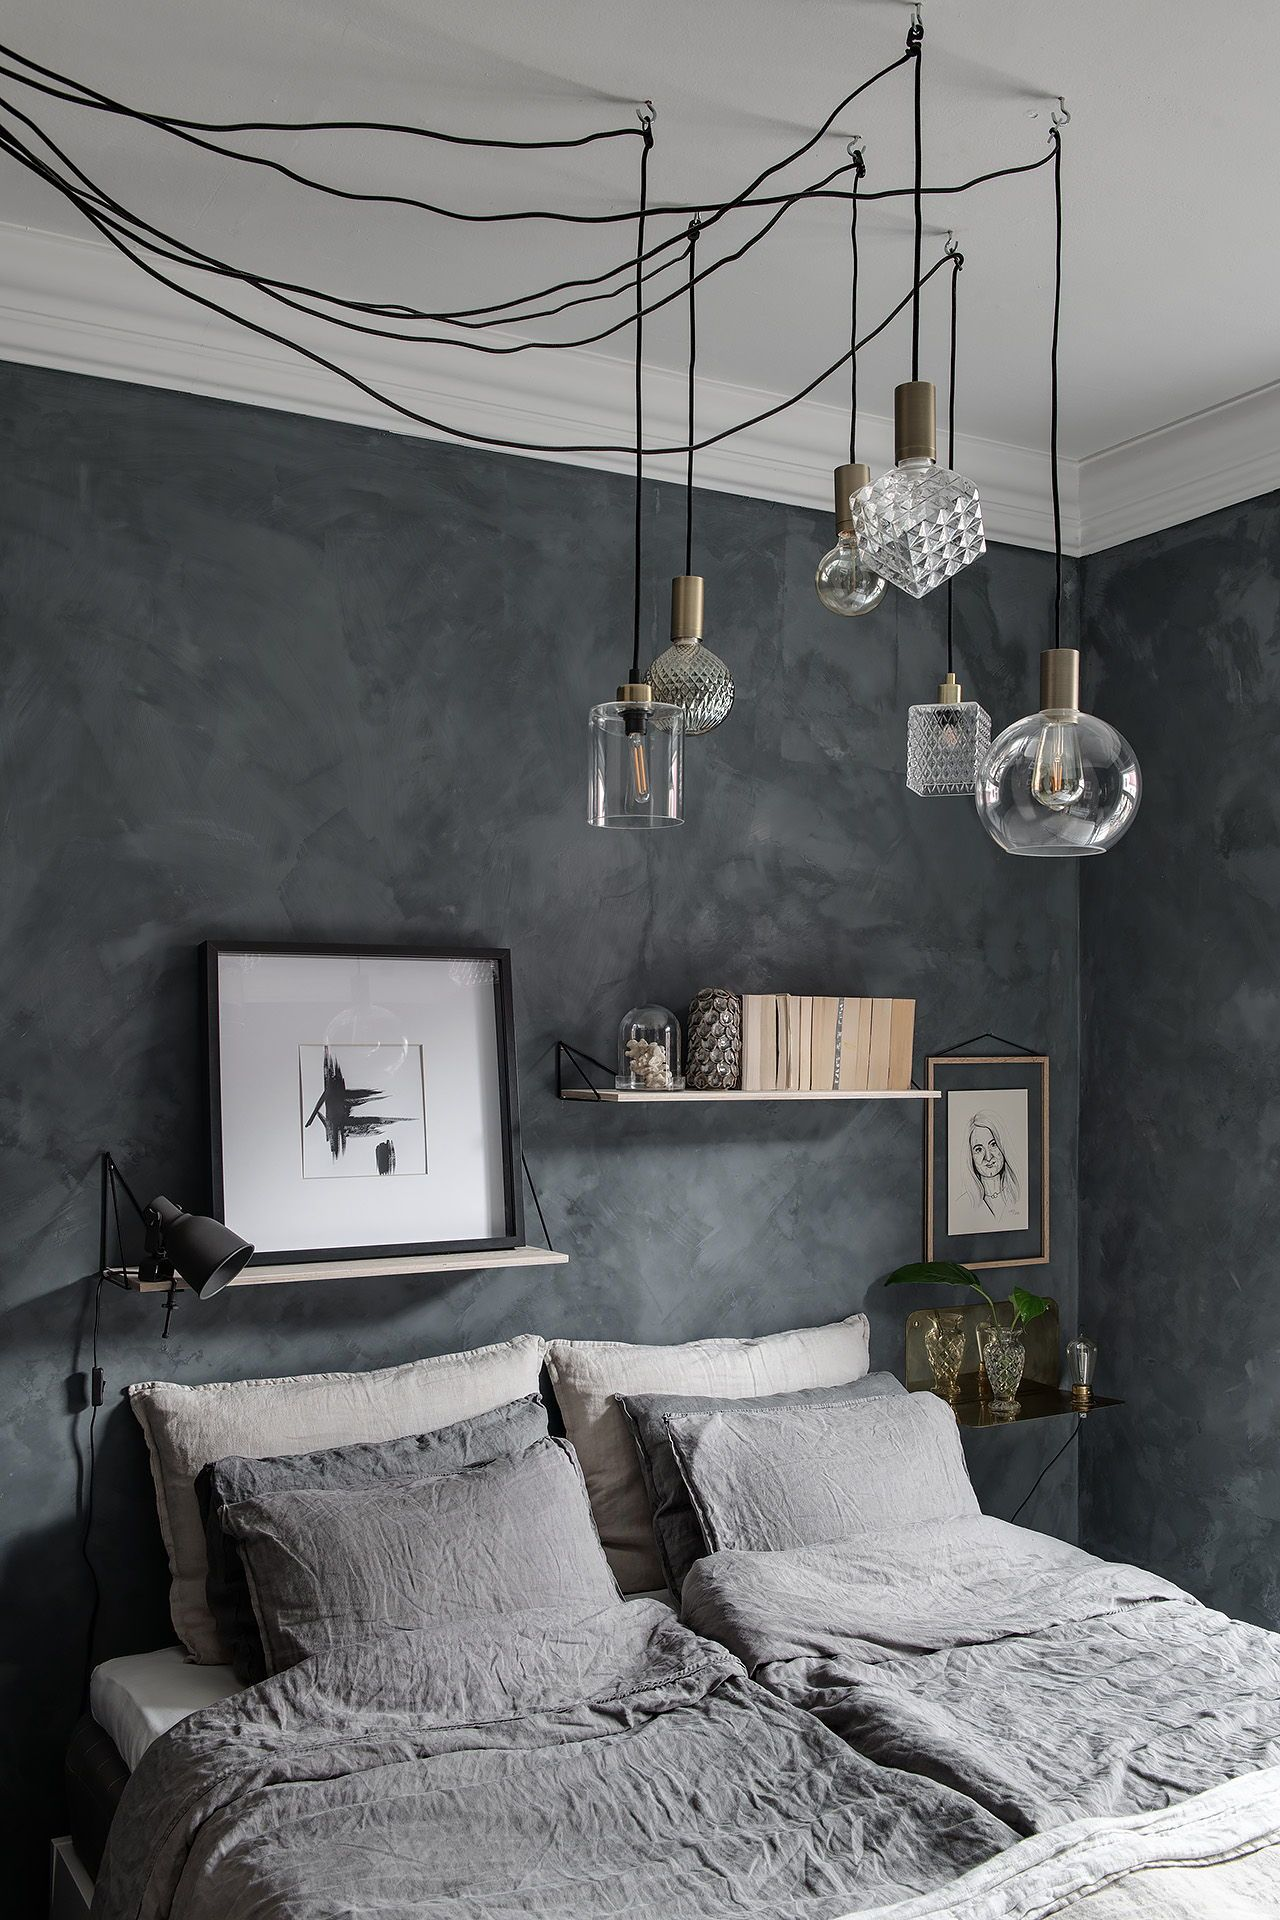 Characterful home with mineral walls via Coco Lapine Design blog